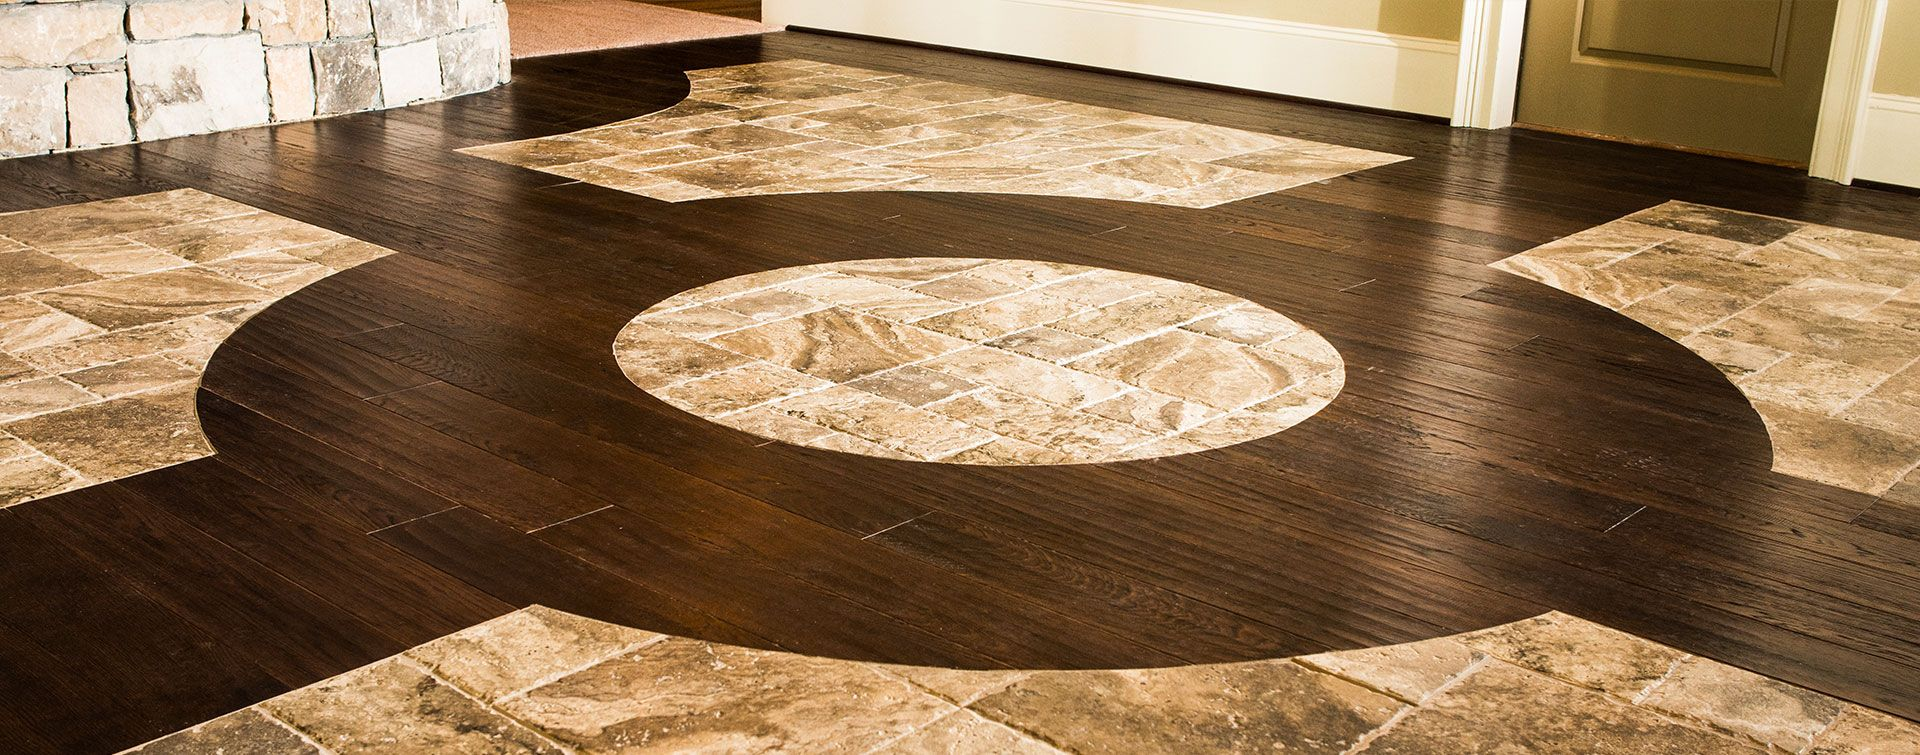 Wood Tile Flooring Patterns Google Search Laundry